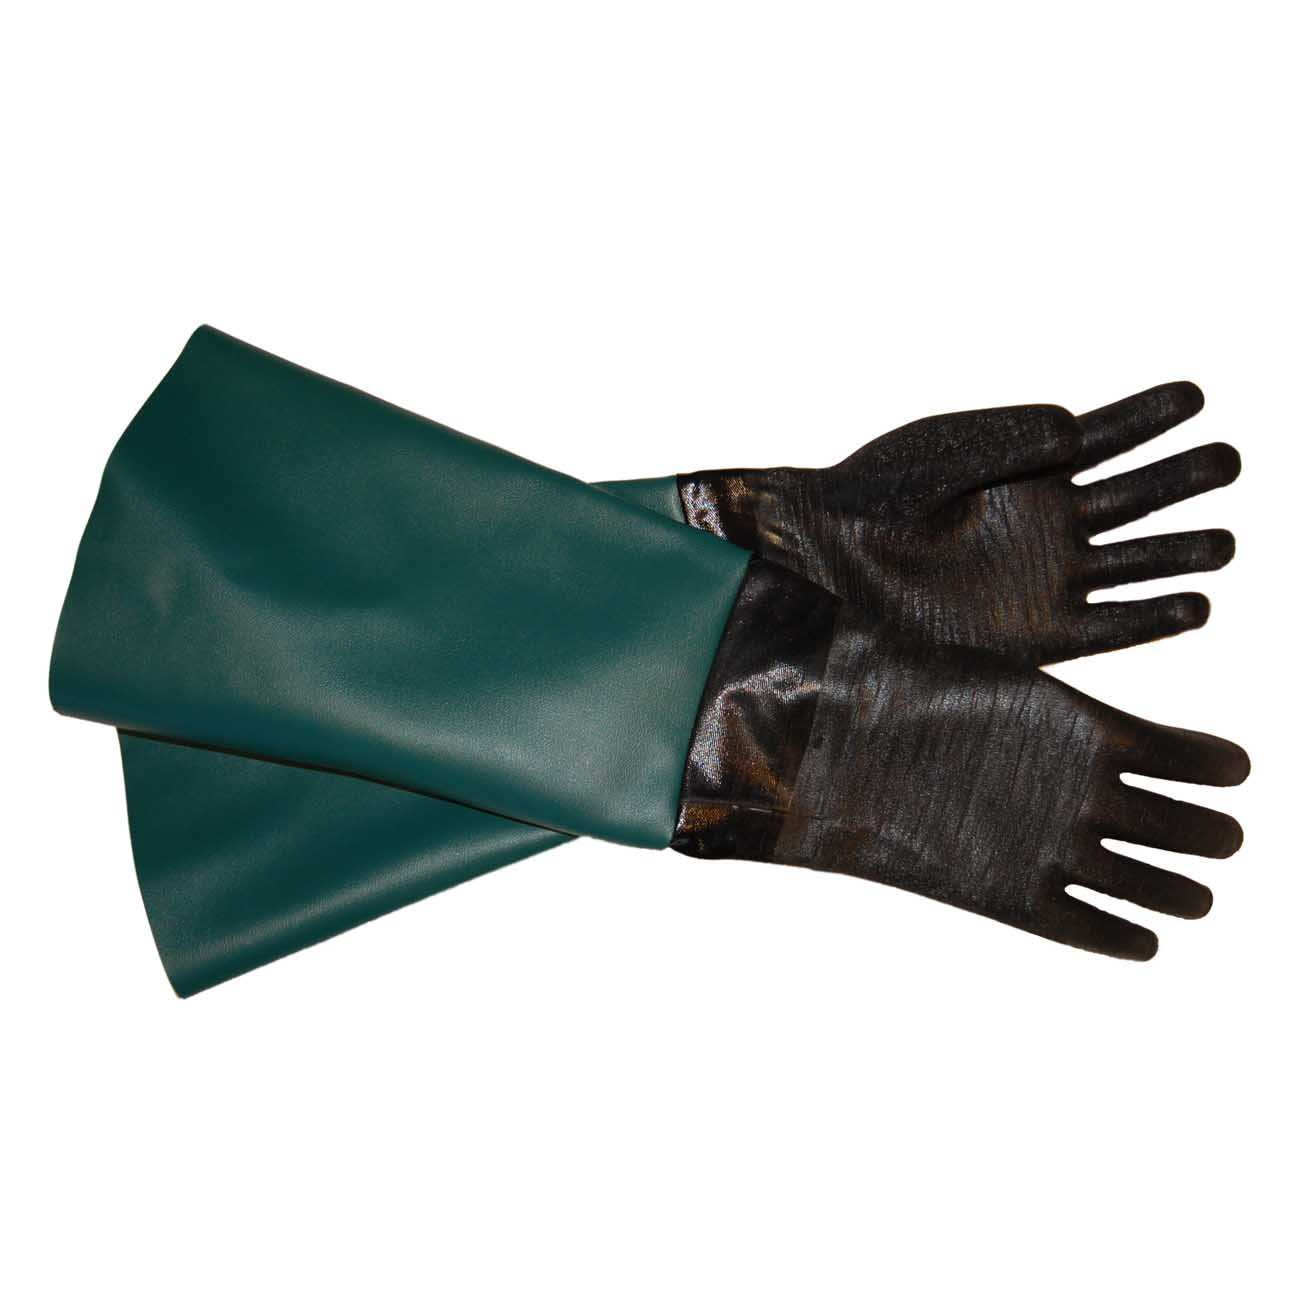 TUFF-Blast Gloves for Sandblasting Sandblaster Sand Blast Cabinet - 7.5'' x 26'' Made in USA by J&B Custom Products